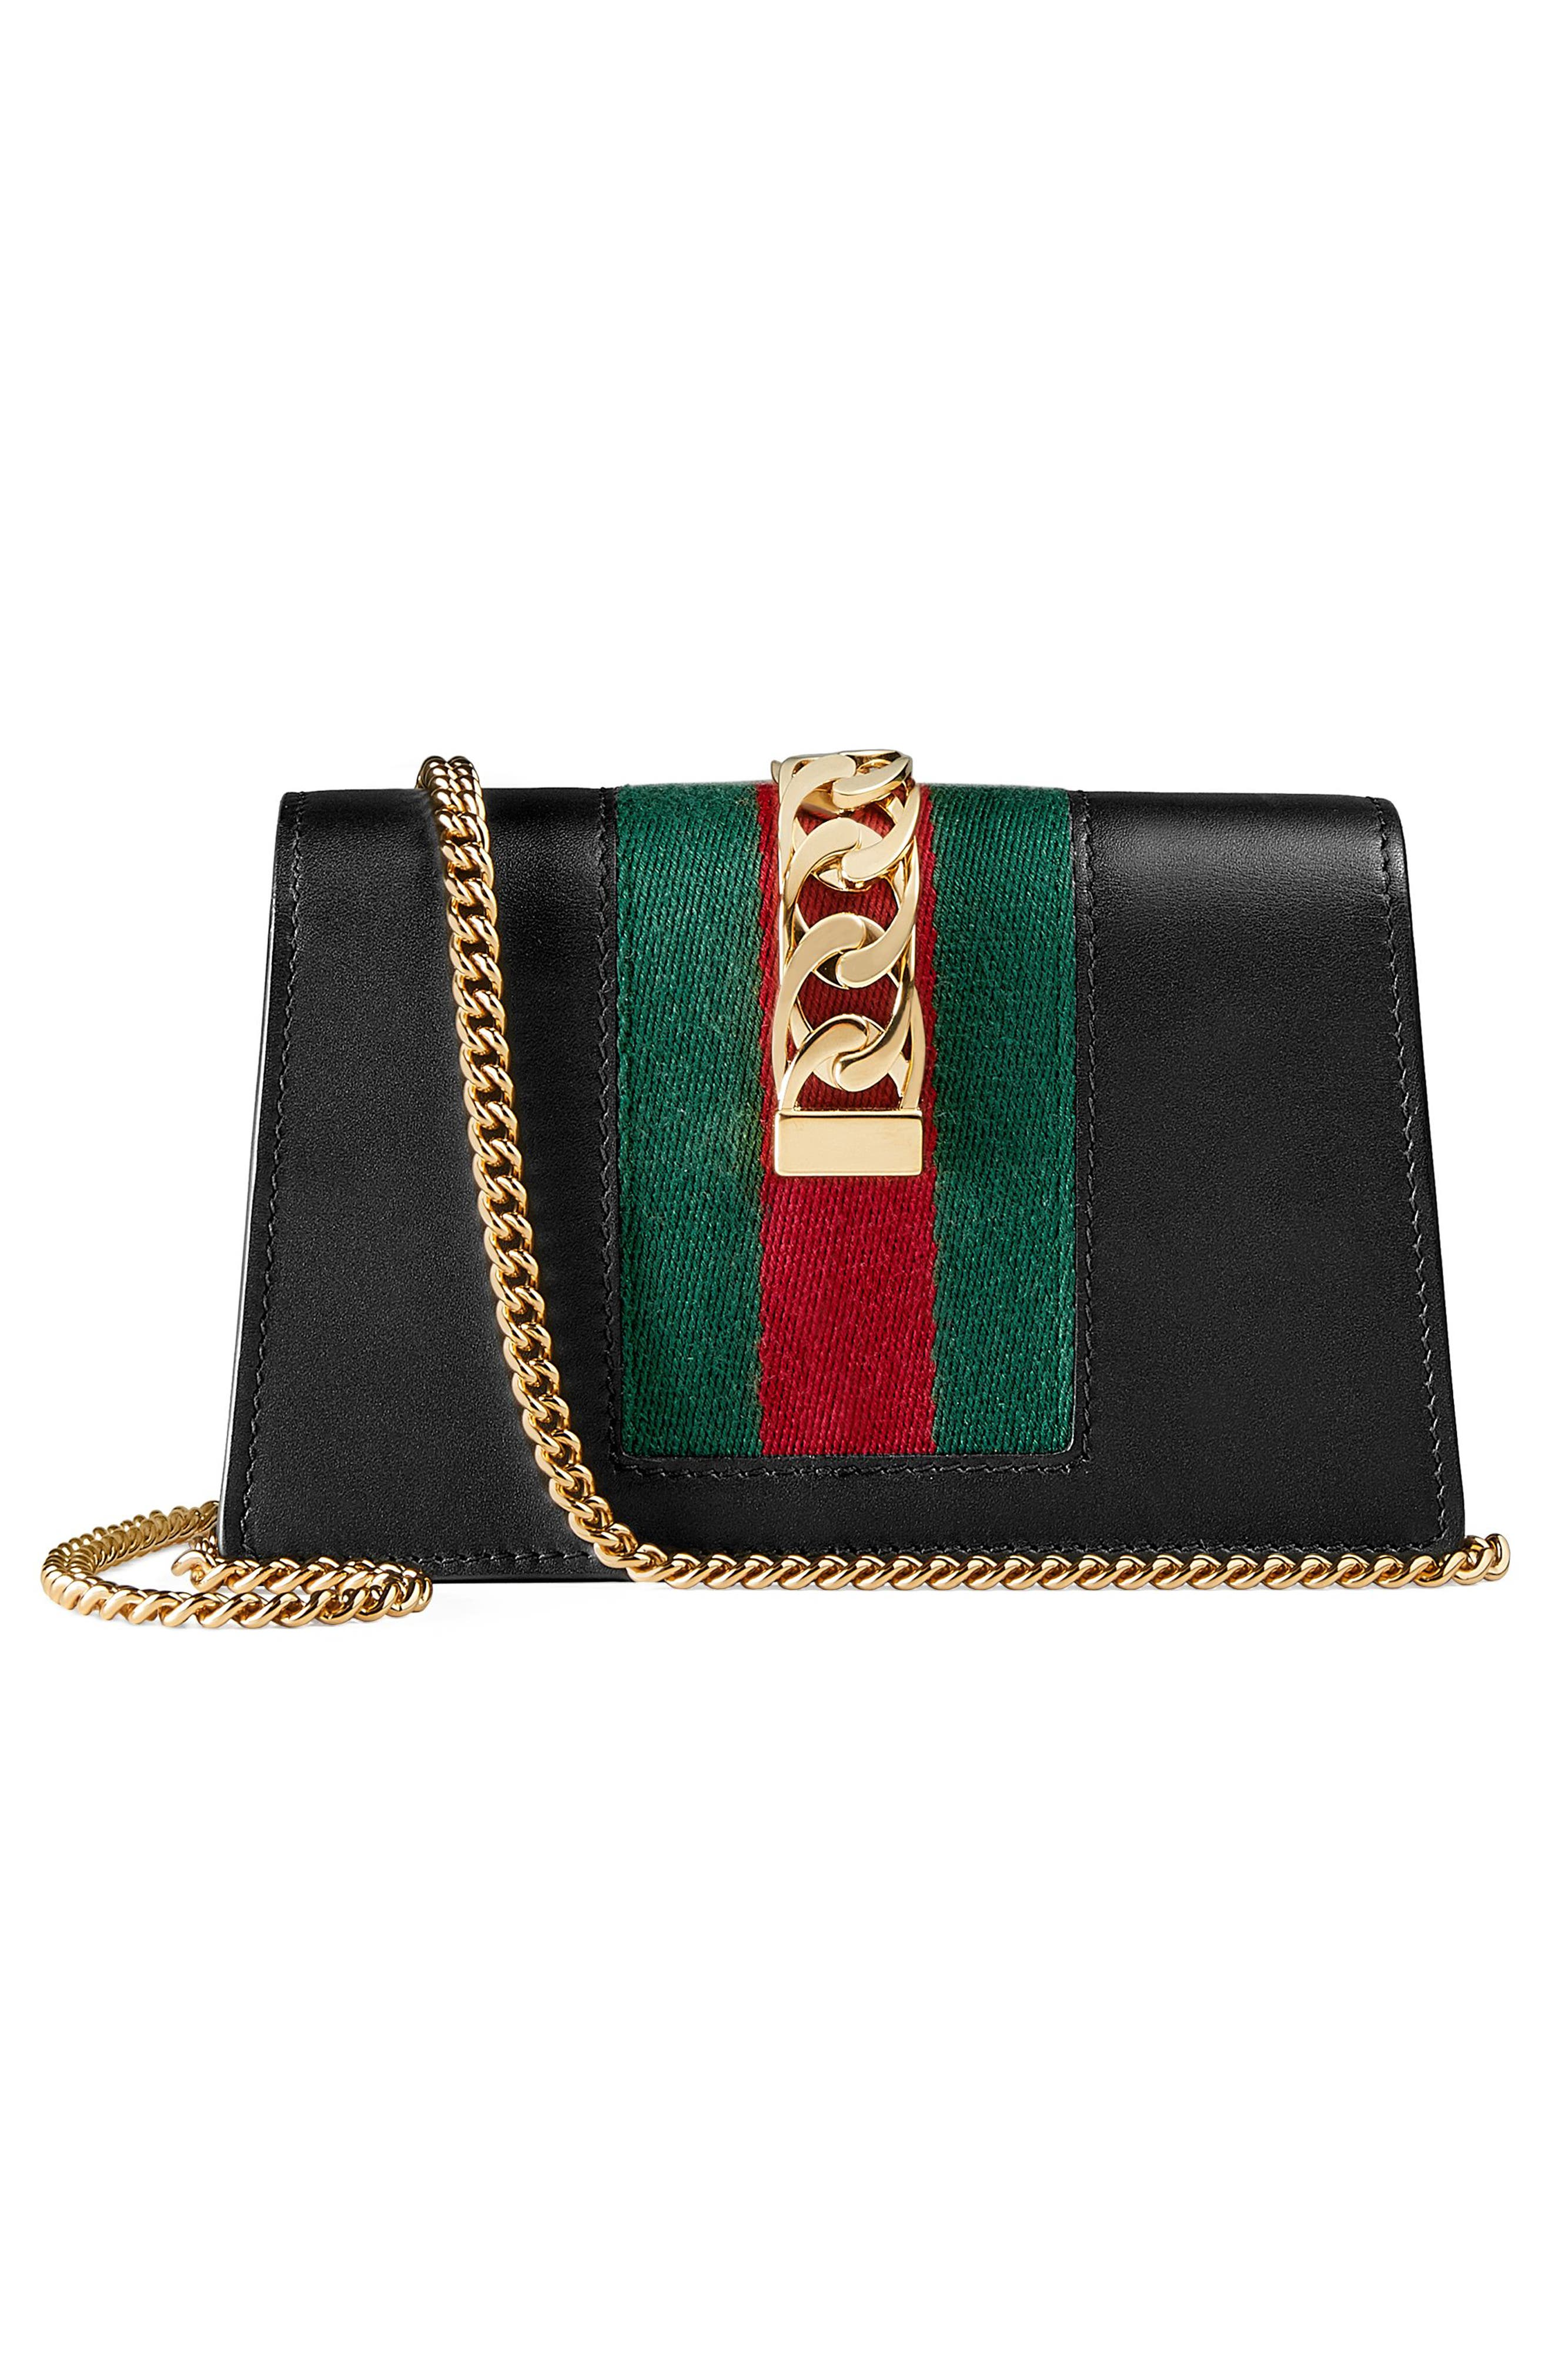 GUCCI, Super Mini Sylvie Chain Wallet, Alternate thumbnail 3, color, 001